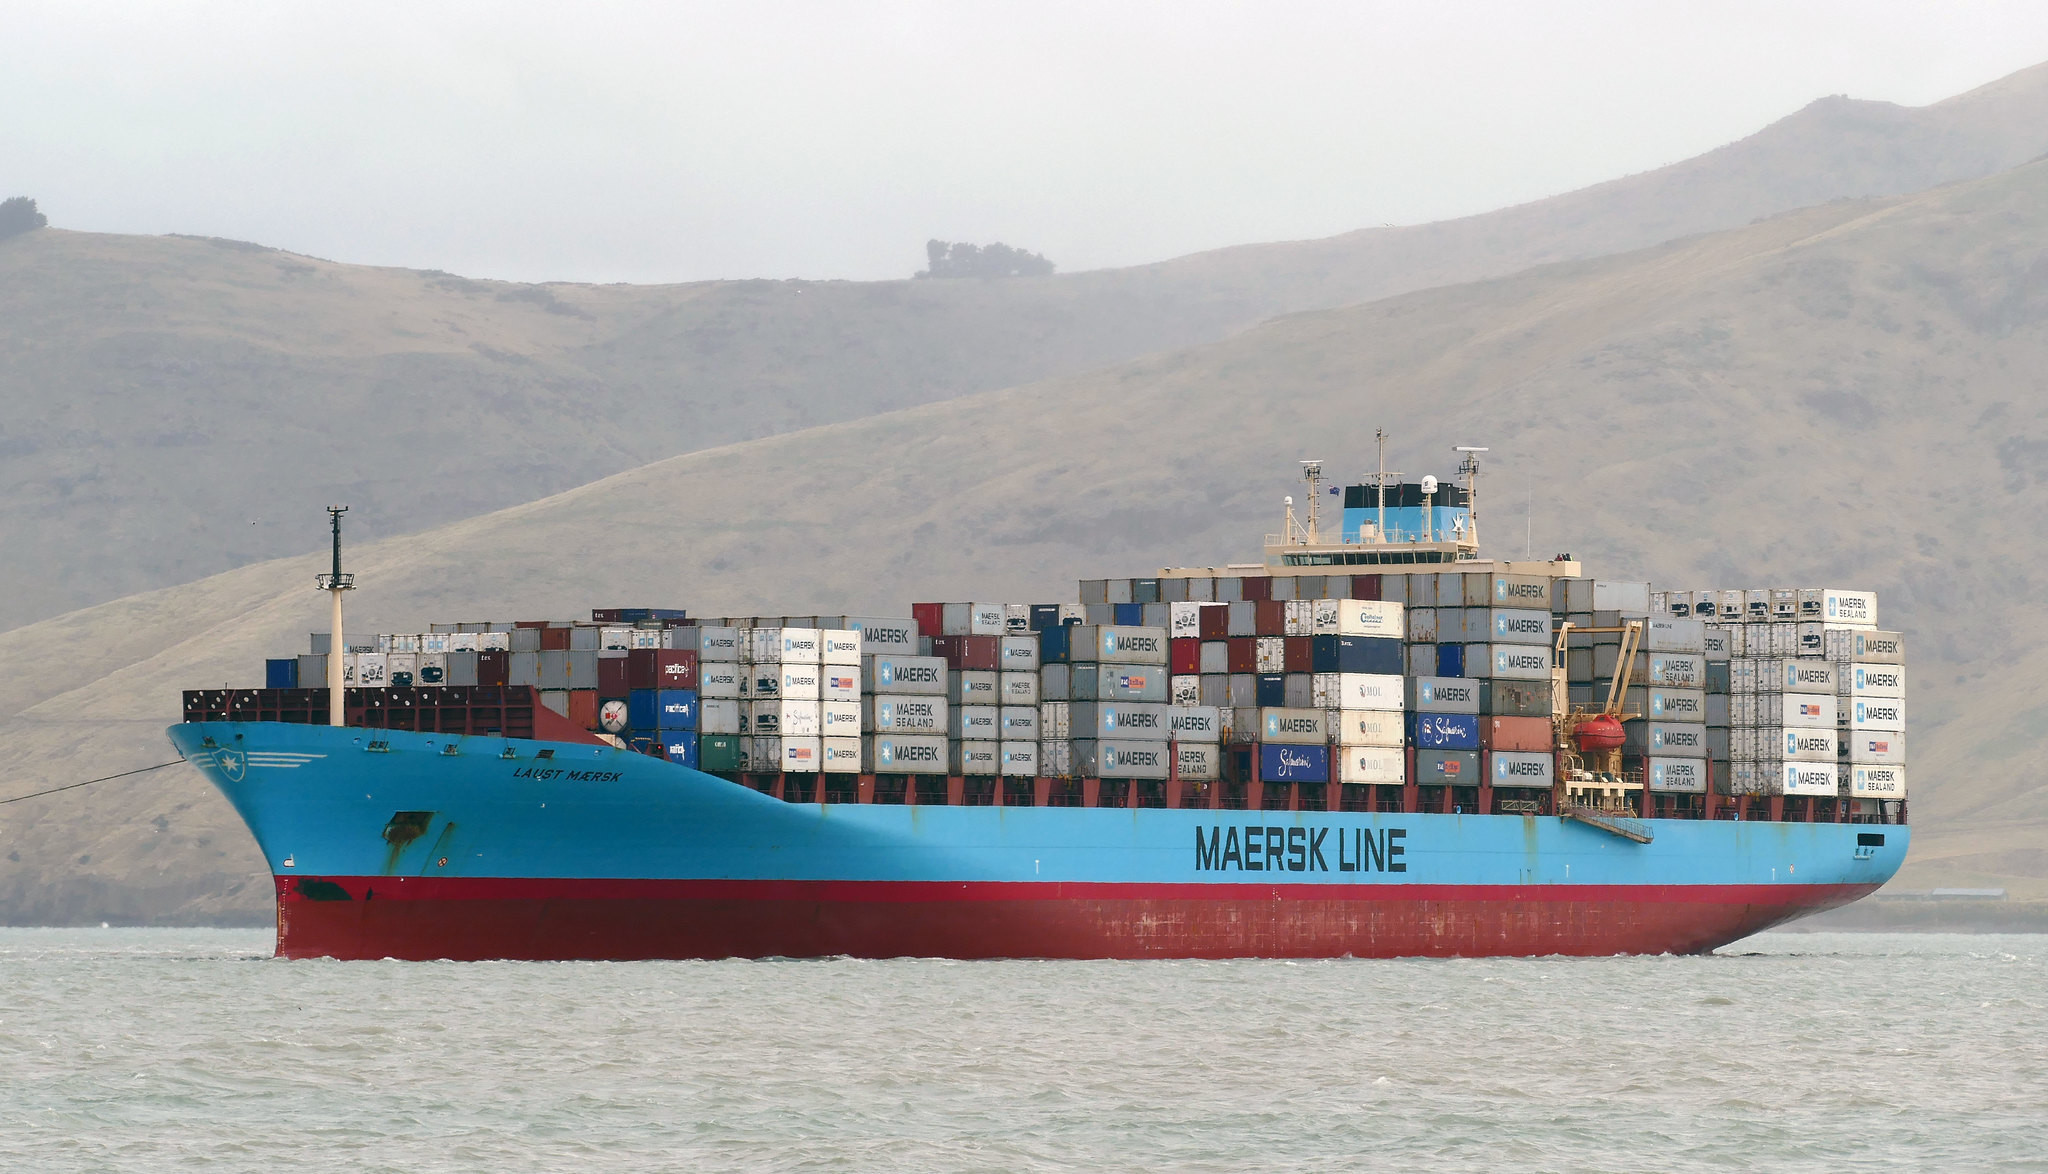 Maersk, the world's largest container ship company, pledged carbon neutrality by 2050.